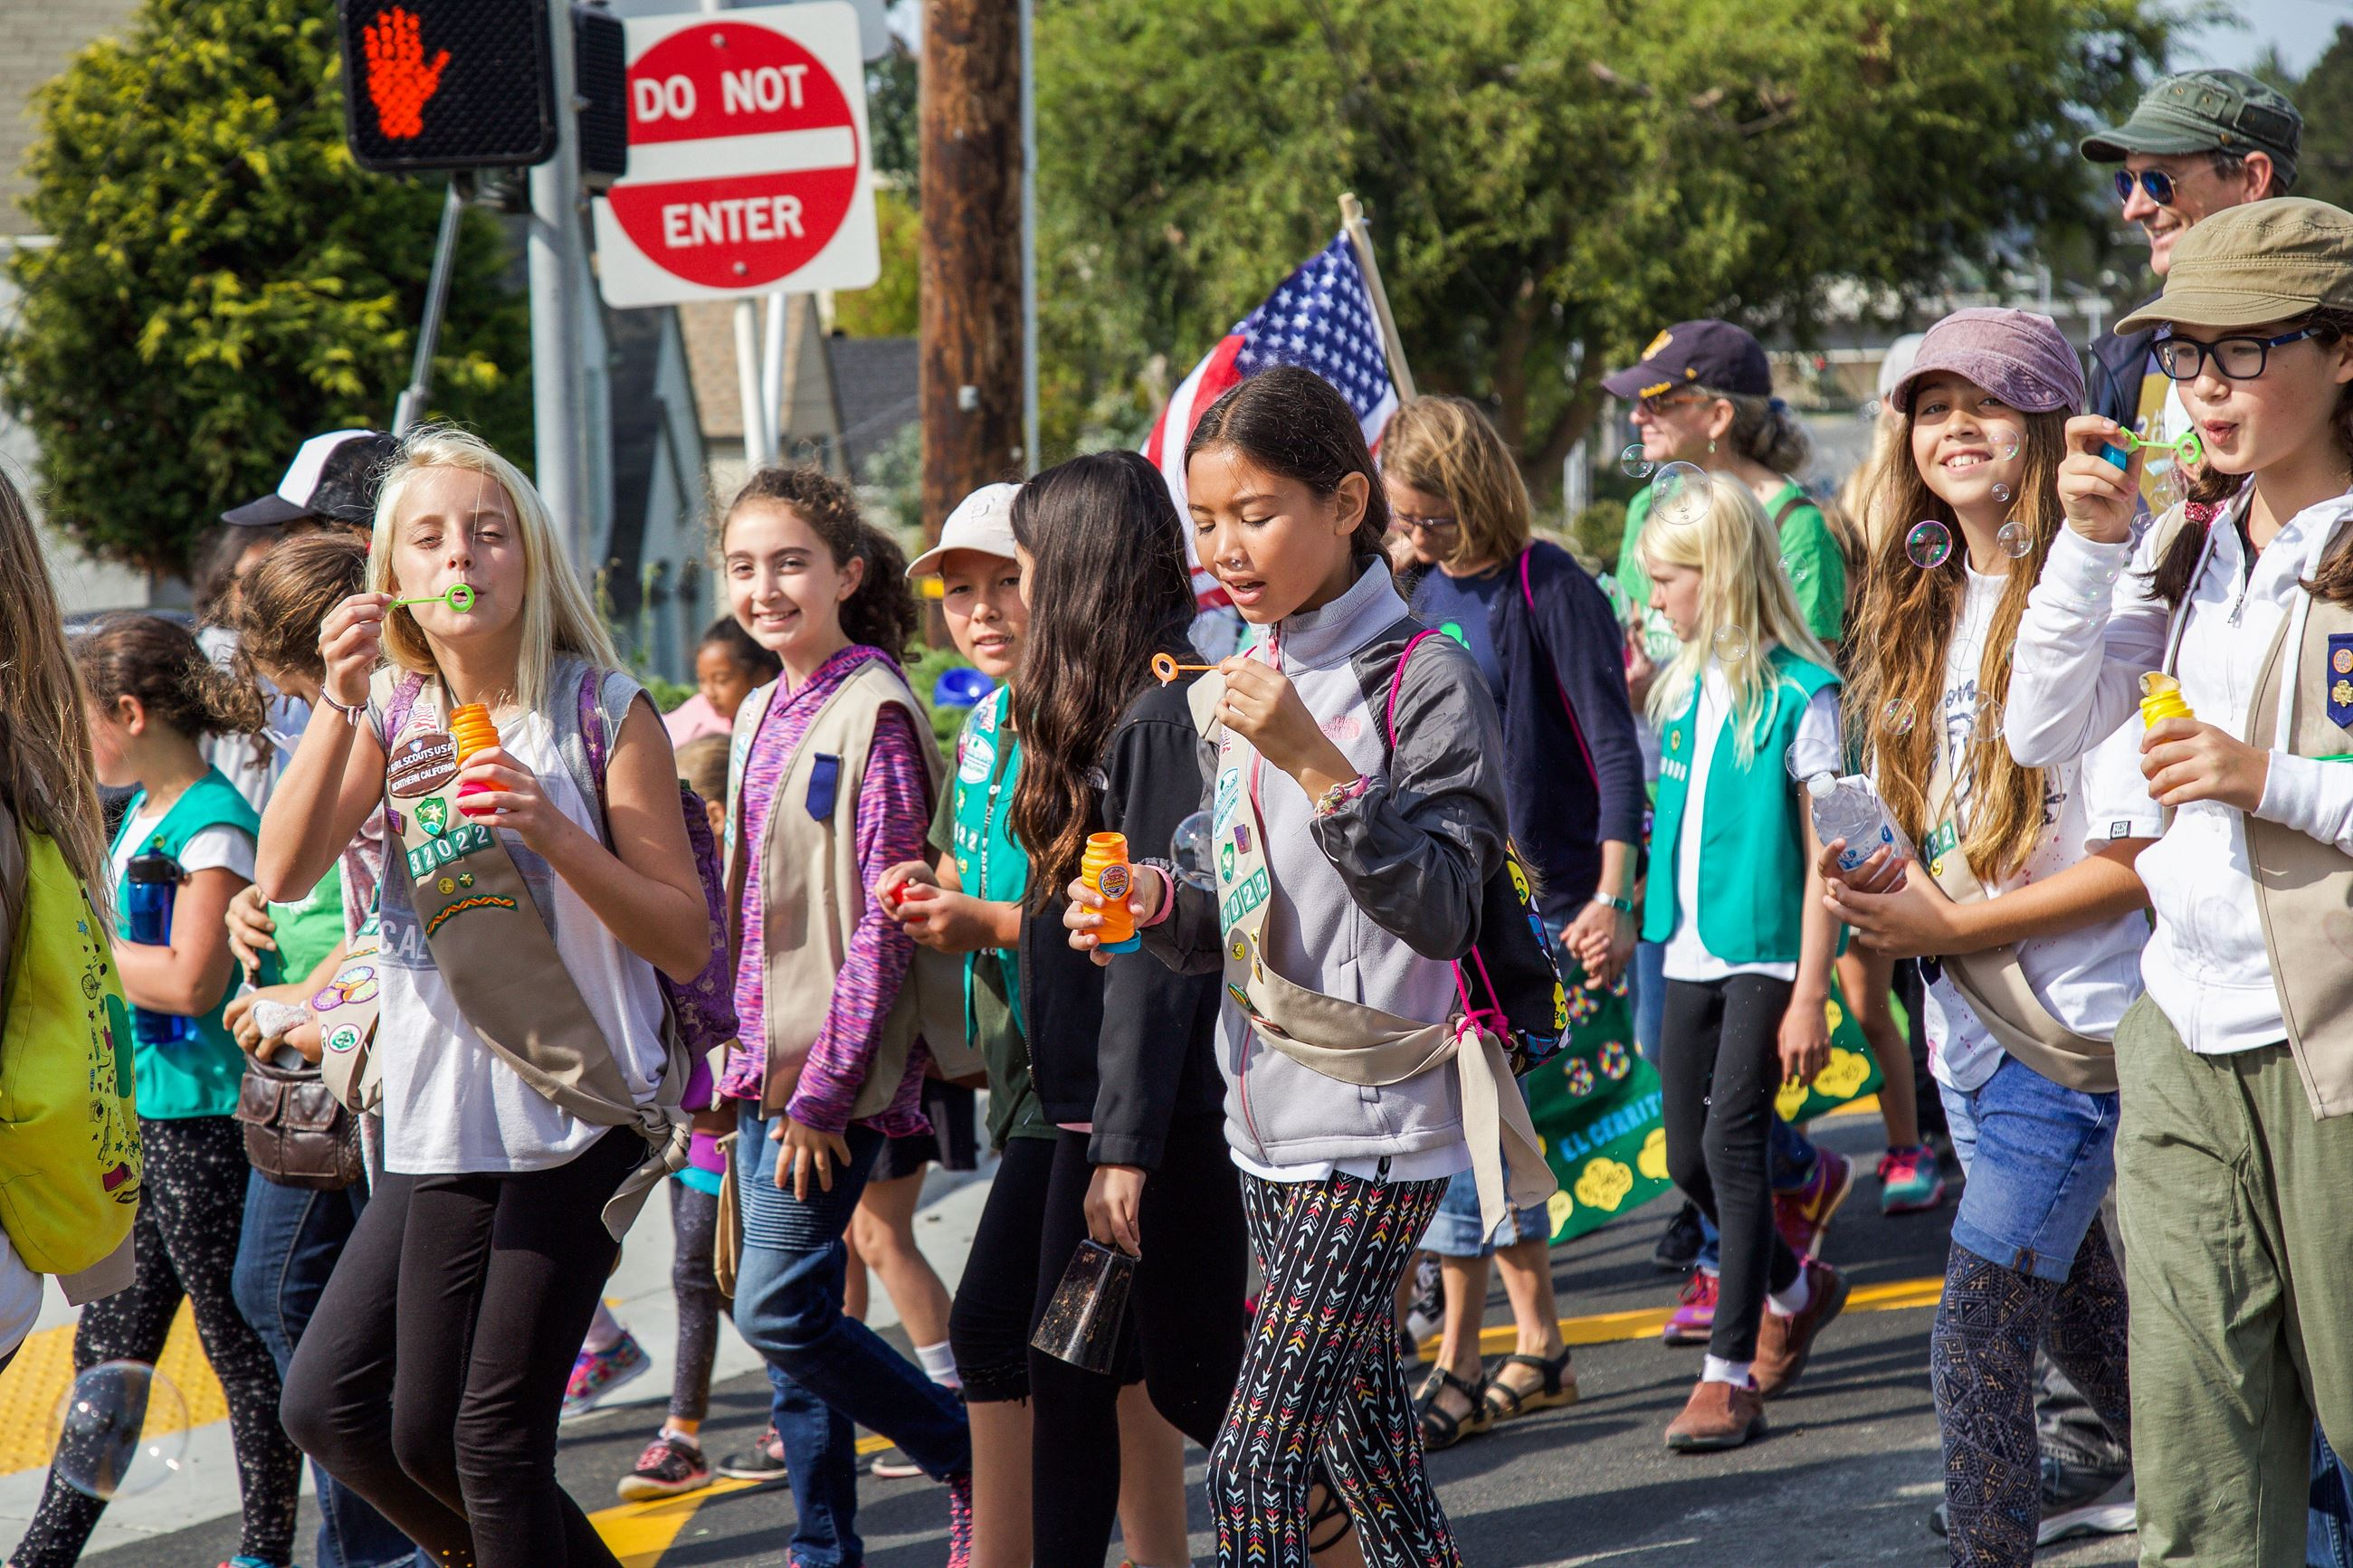 277 scouts blowing bubbles in Parade - Photo by Marin Stuart